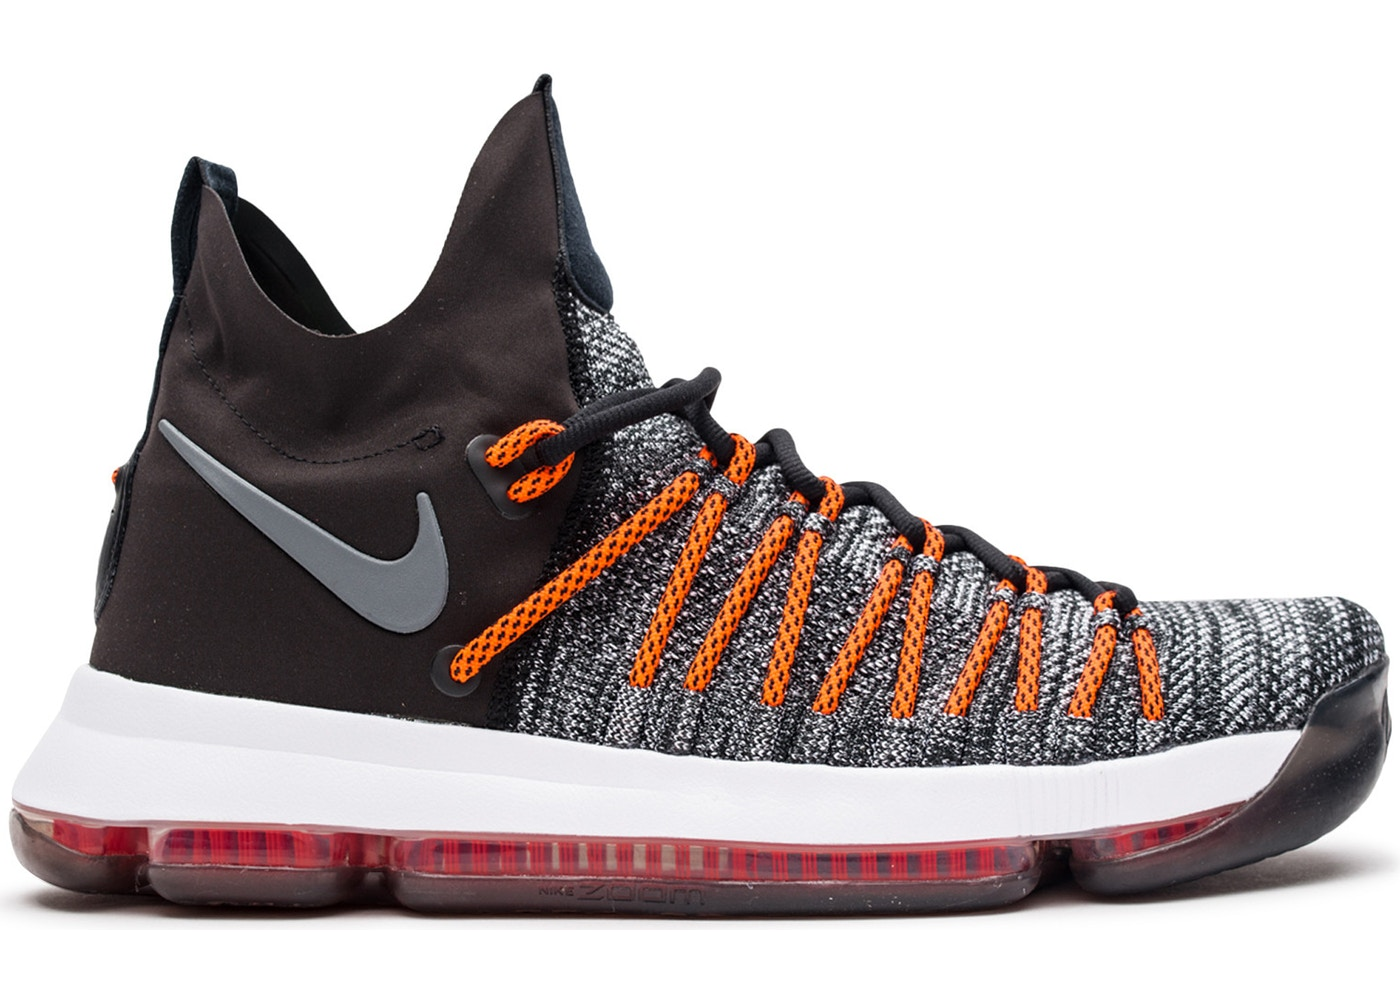 ce968b7edacc Nike KD 9 Shoes - Average Sale Price